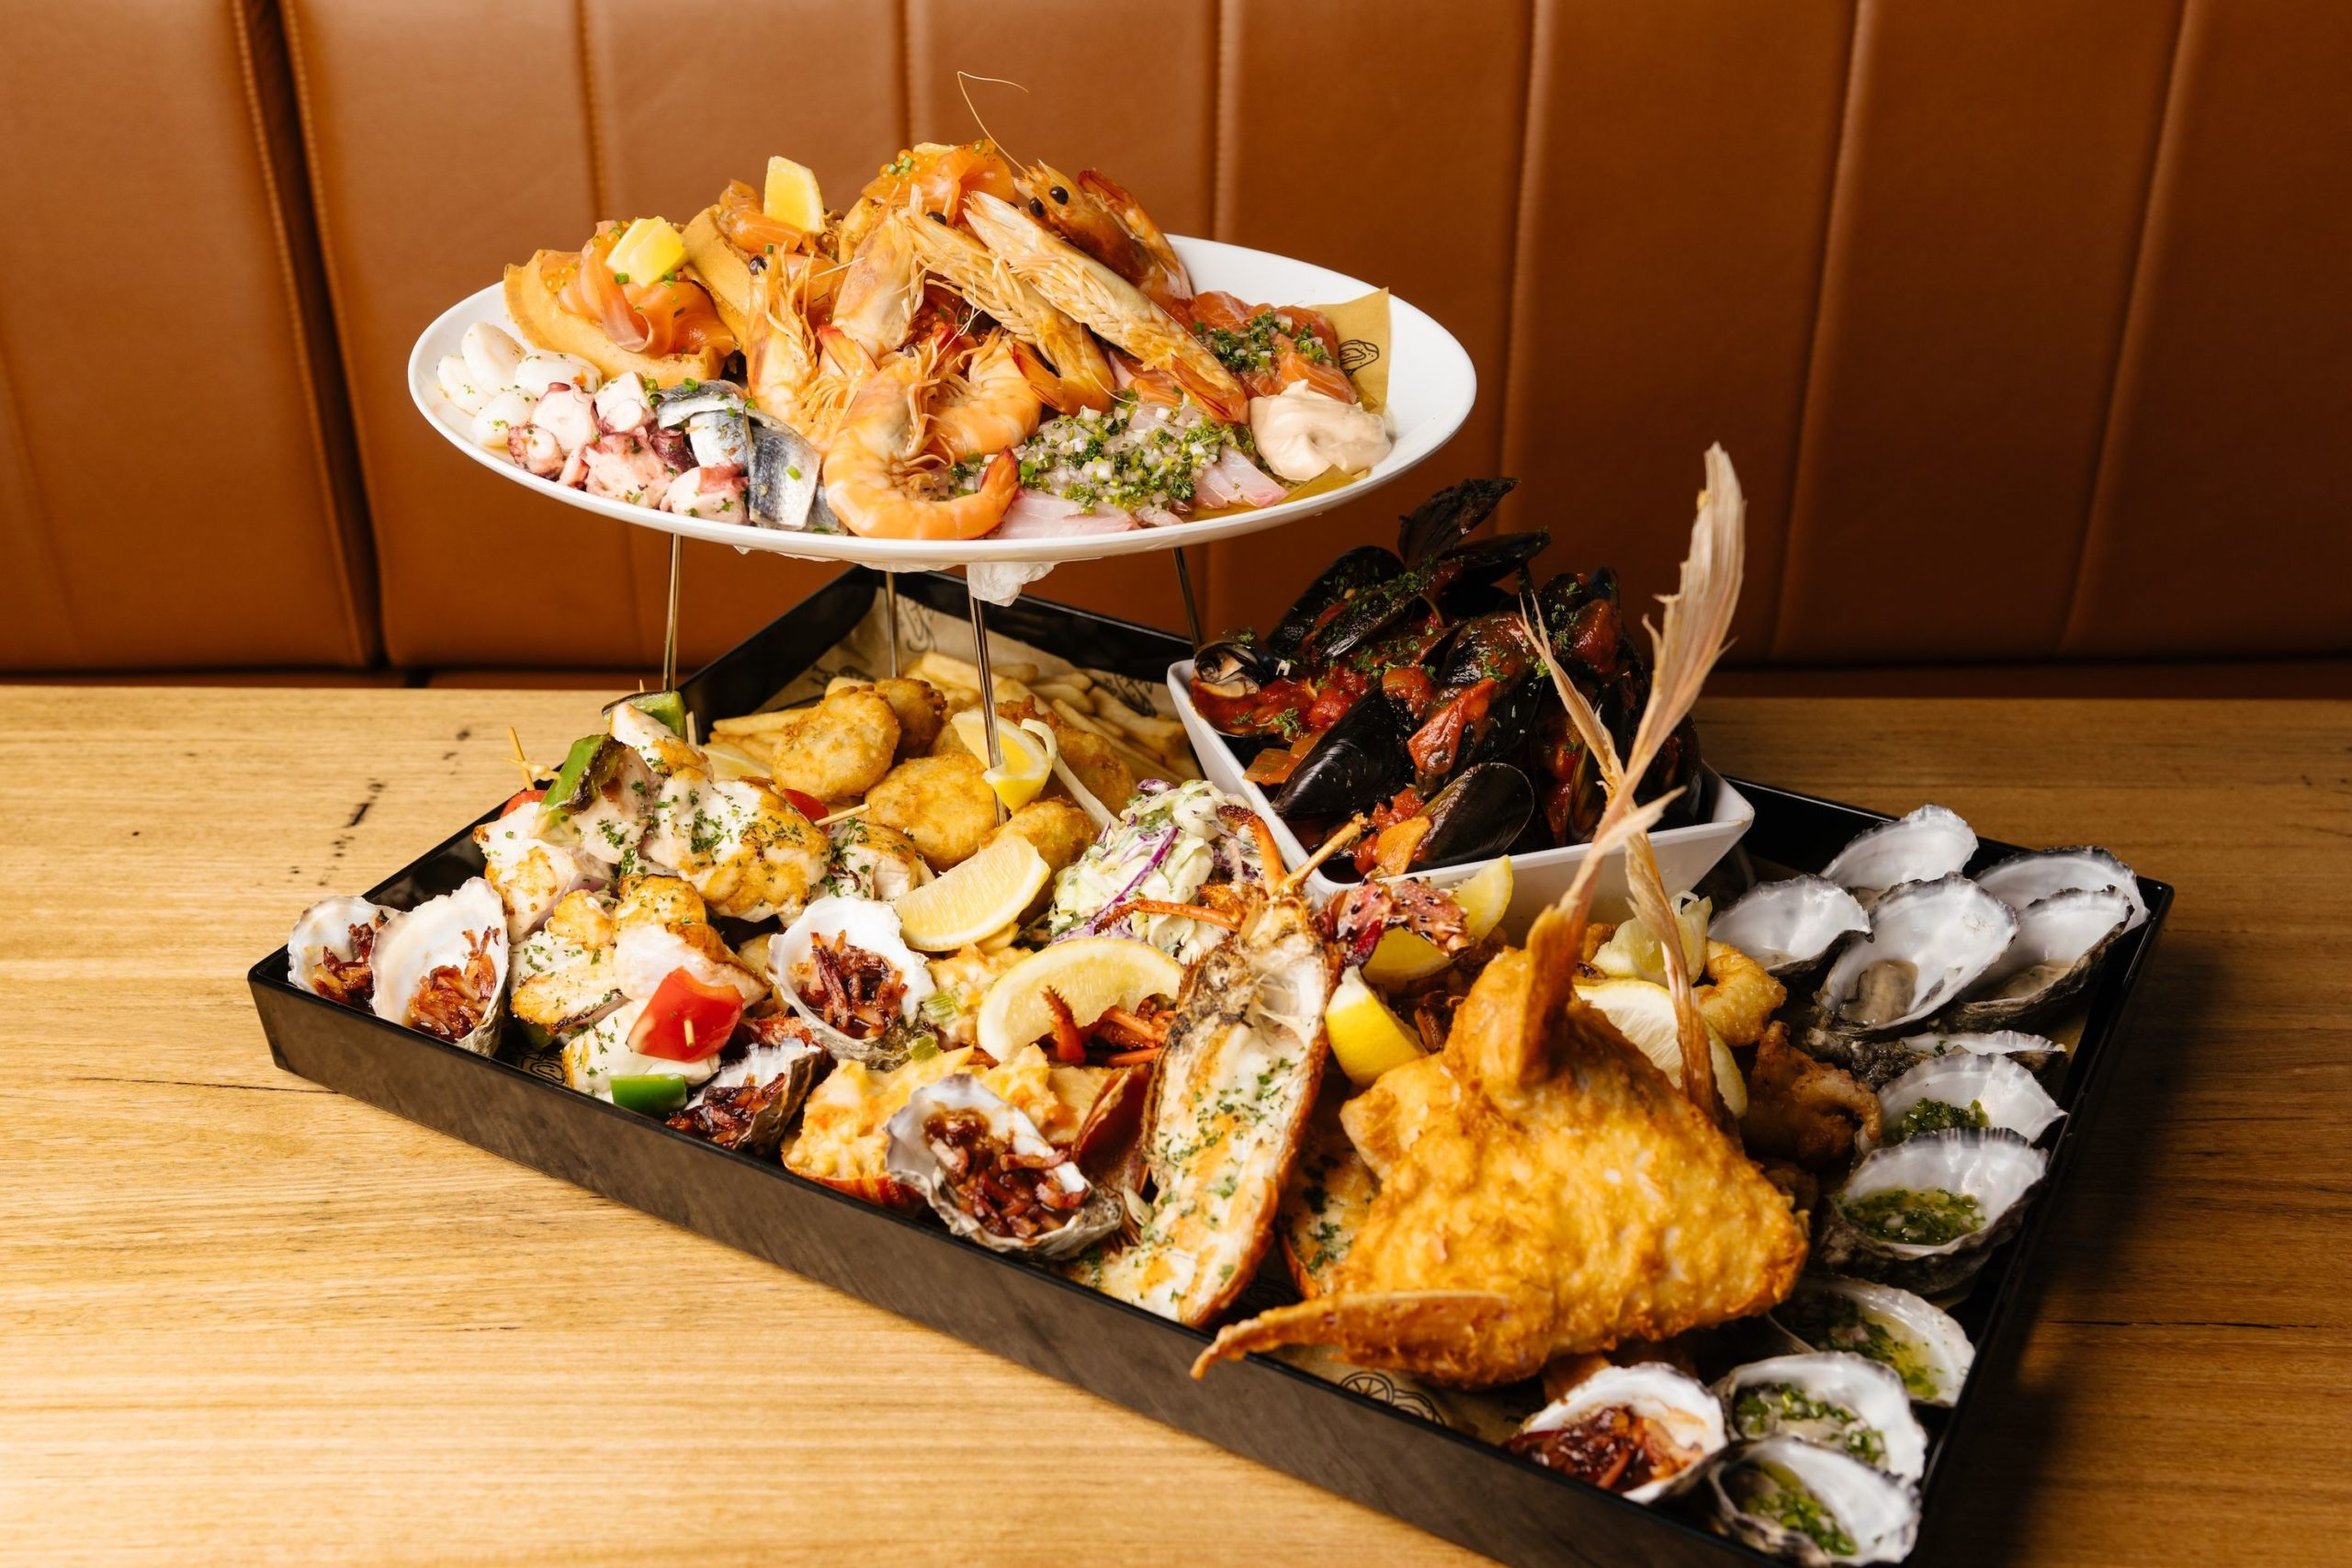 Is This Crazy Feast The Biggest Seafood Platter in Perth?